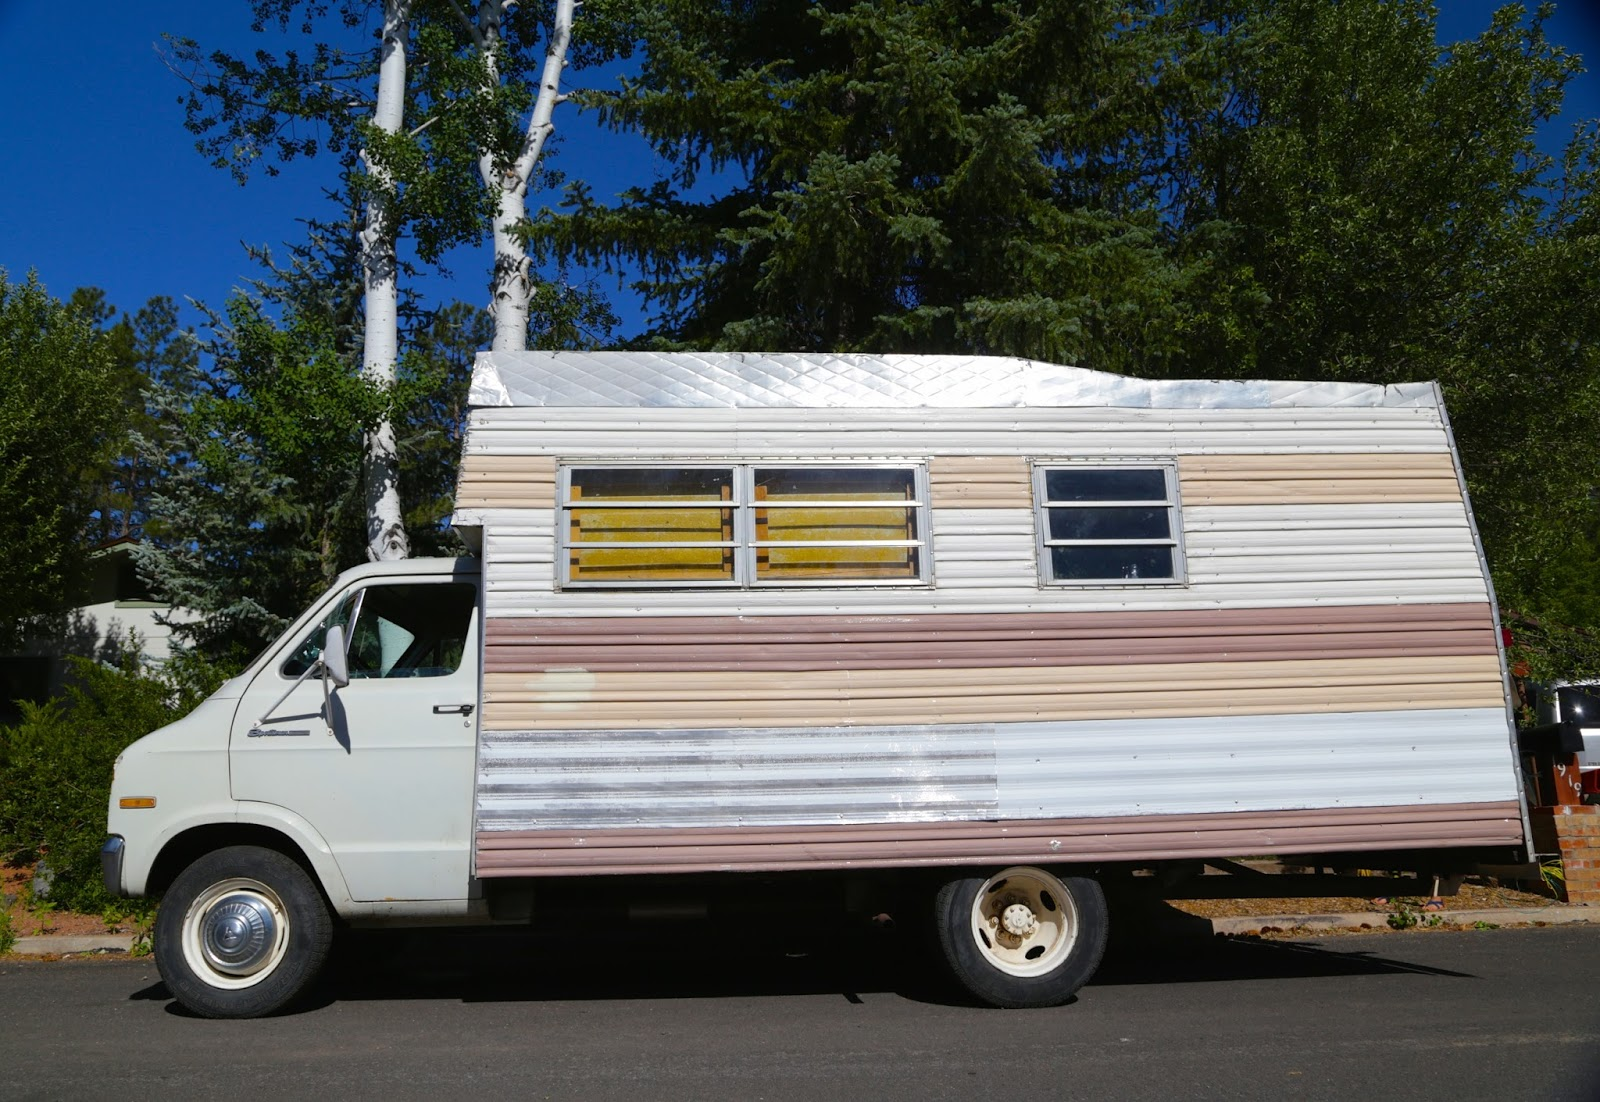 OLD PARKED CARS : Andy's 1972 Dodge Sportsman RV